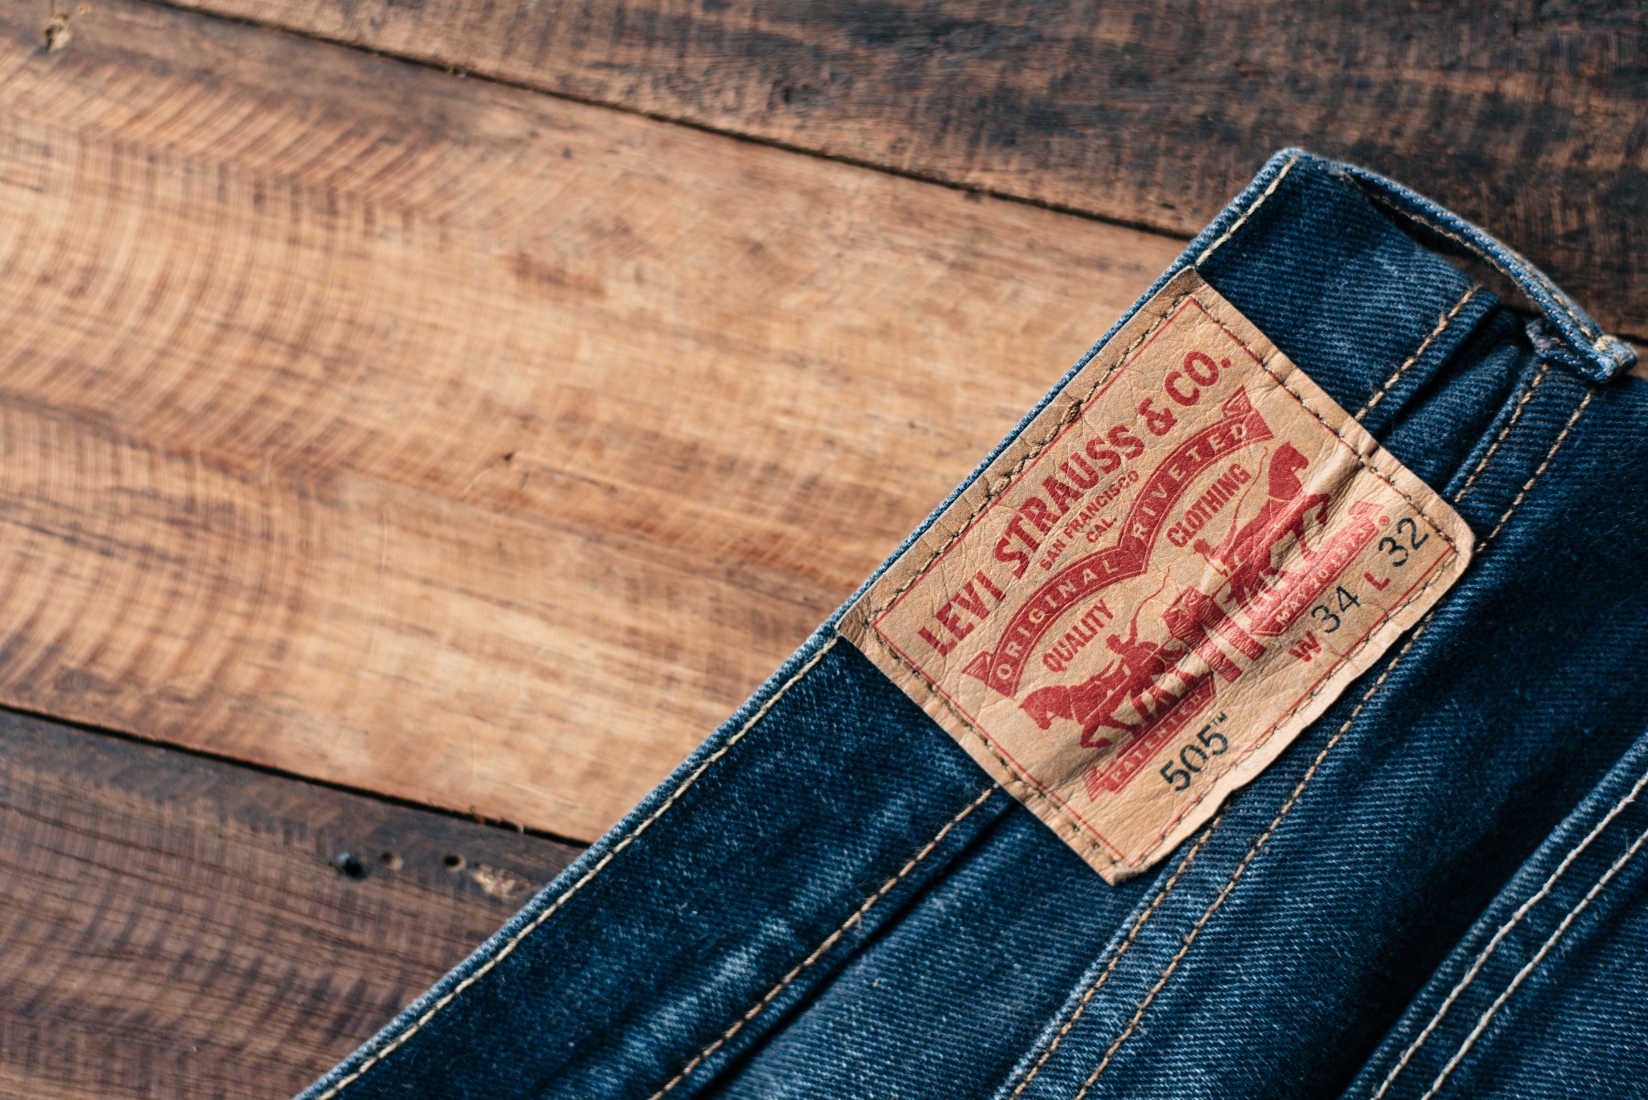 Levi Strauss Donates $1 Million to Gun Control Movement, Partners with Michael Bloomberg